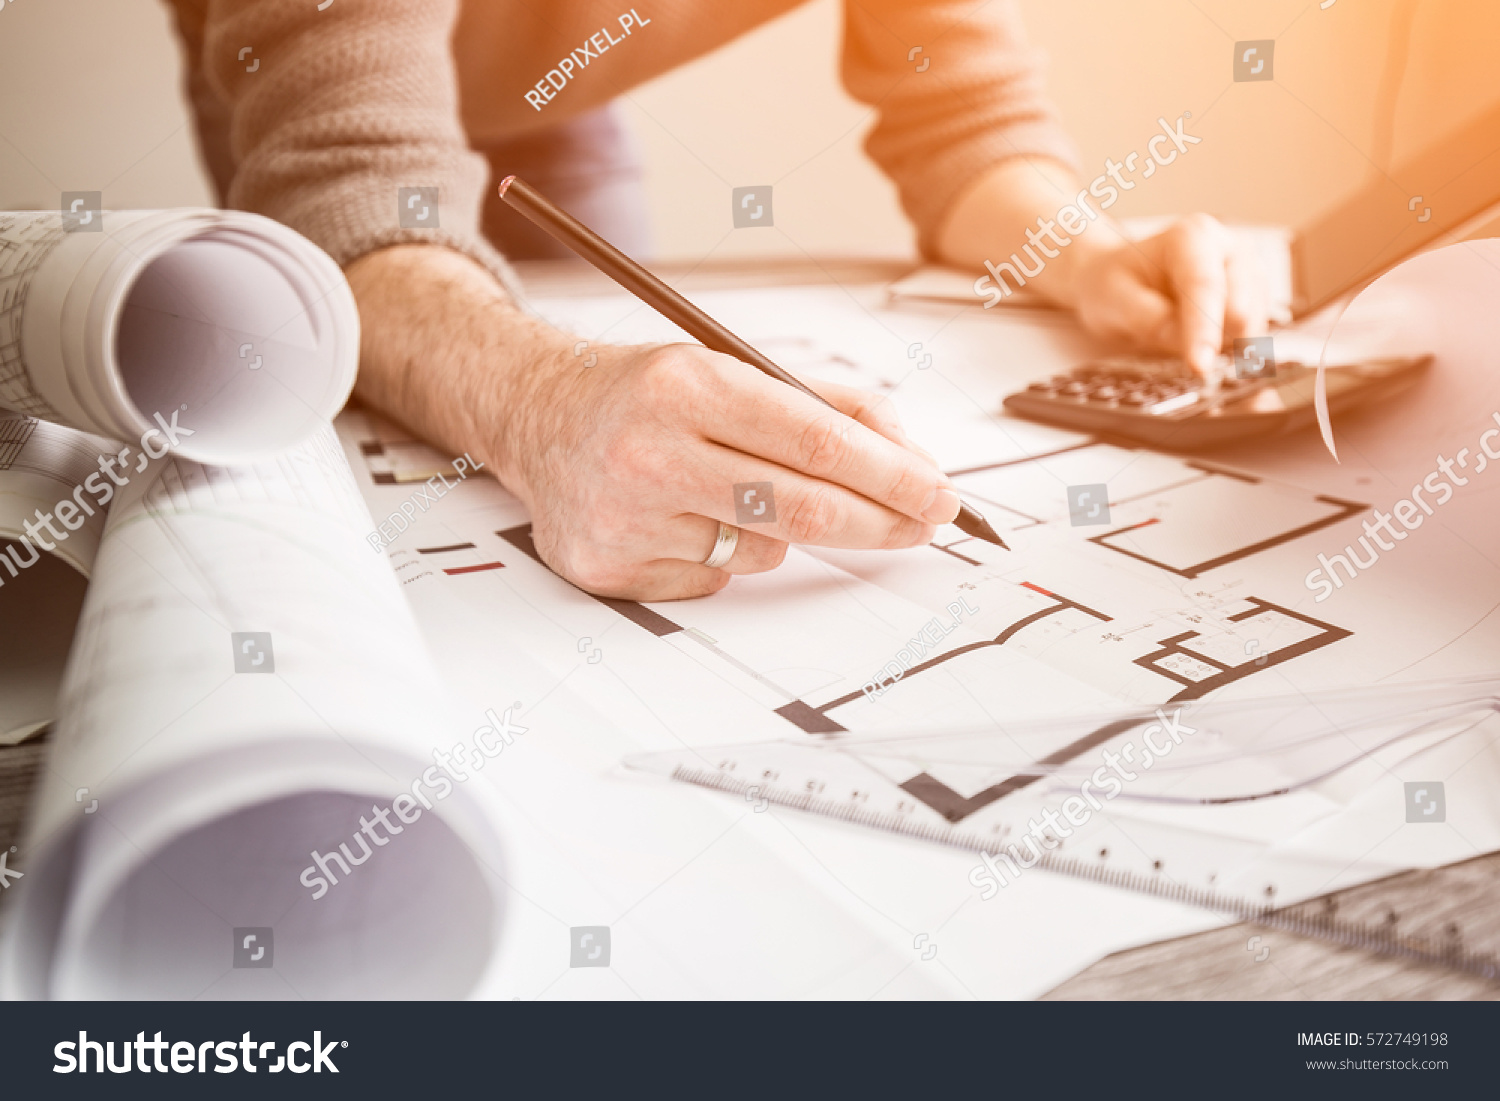 Architect architecture drawing project blueprint office imagen de architect architecture drawing project blueprint office business working architectural construction design designer ruler table workplace concept malvernweather Gallery